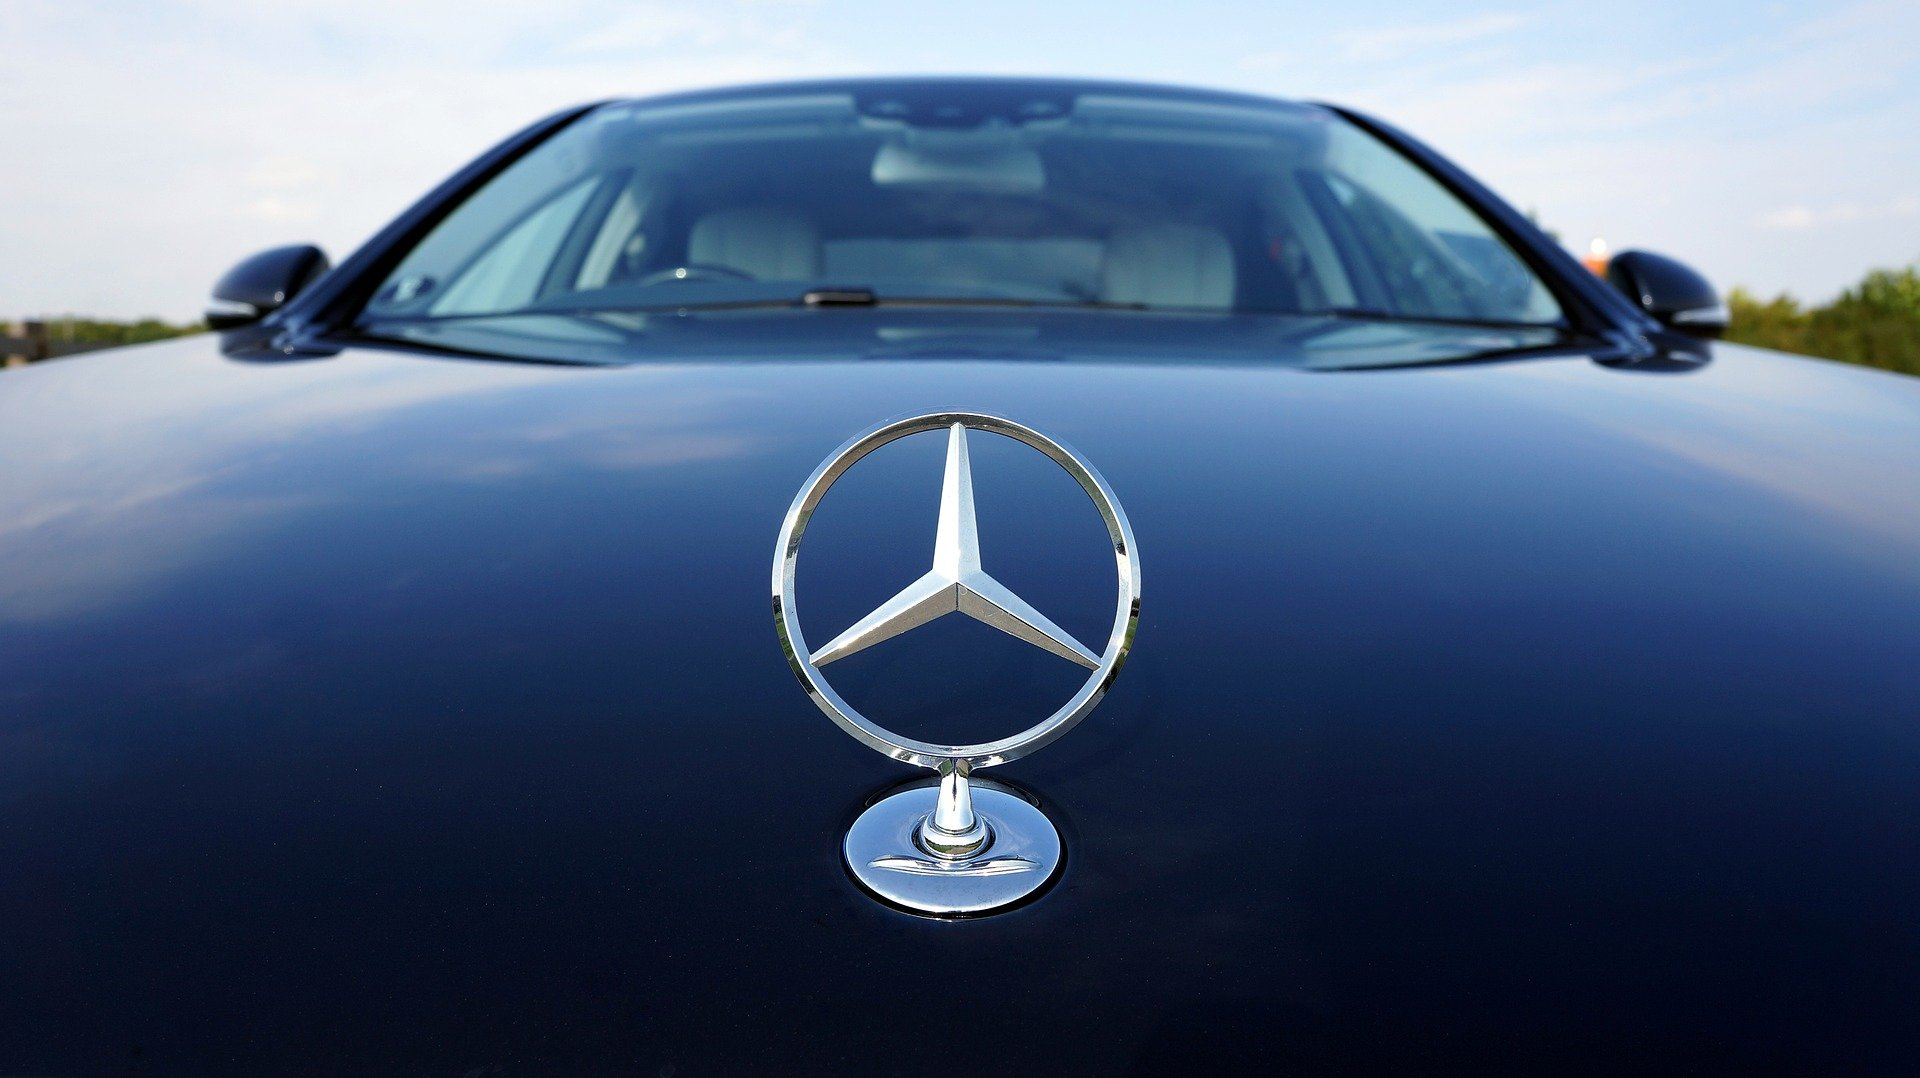 The taxi car had a Mercedes Benz hood ornament. | Photo: Pixabay/Mikes-Photography